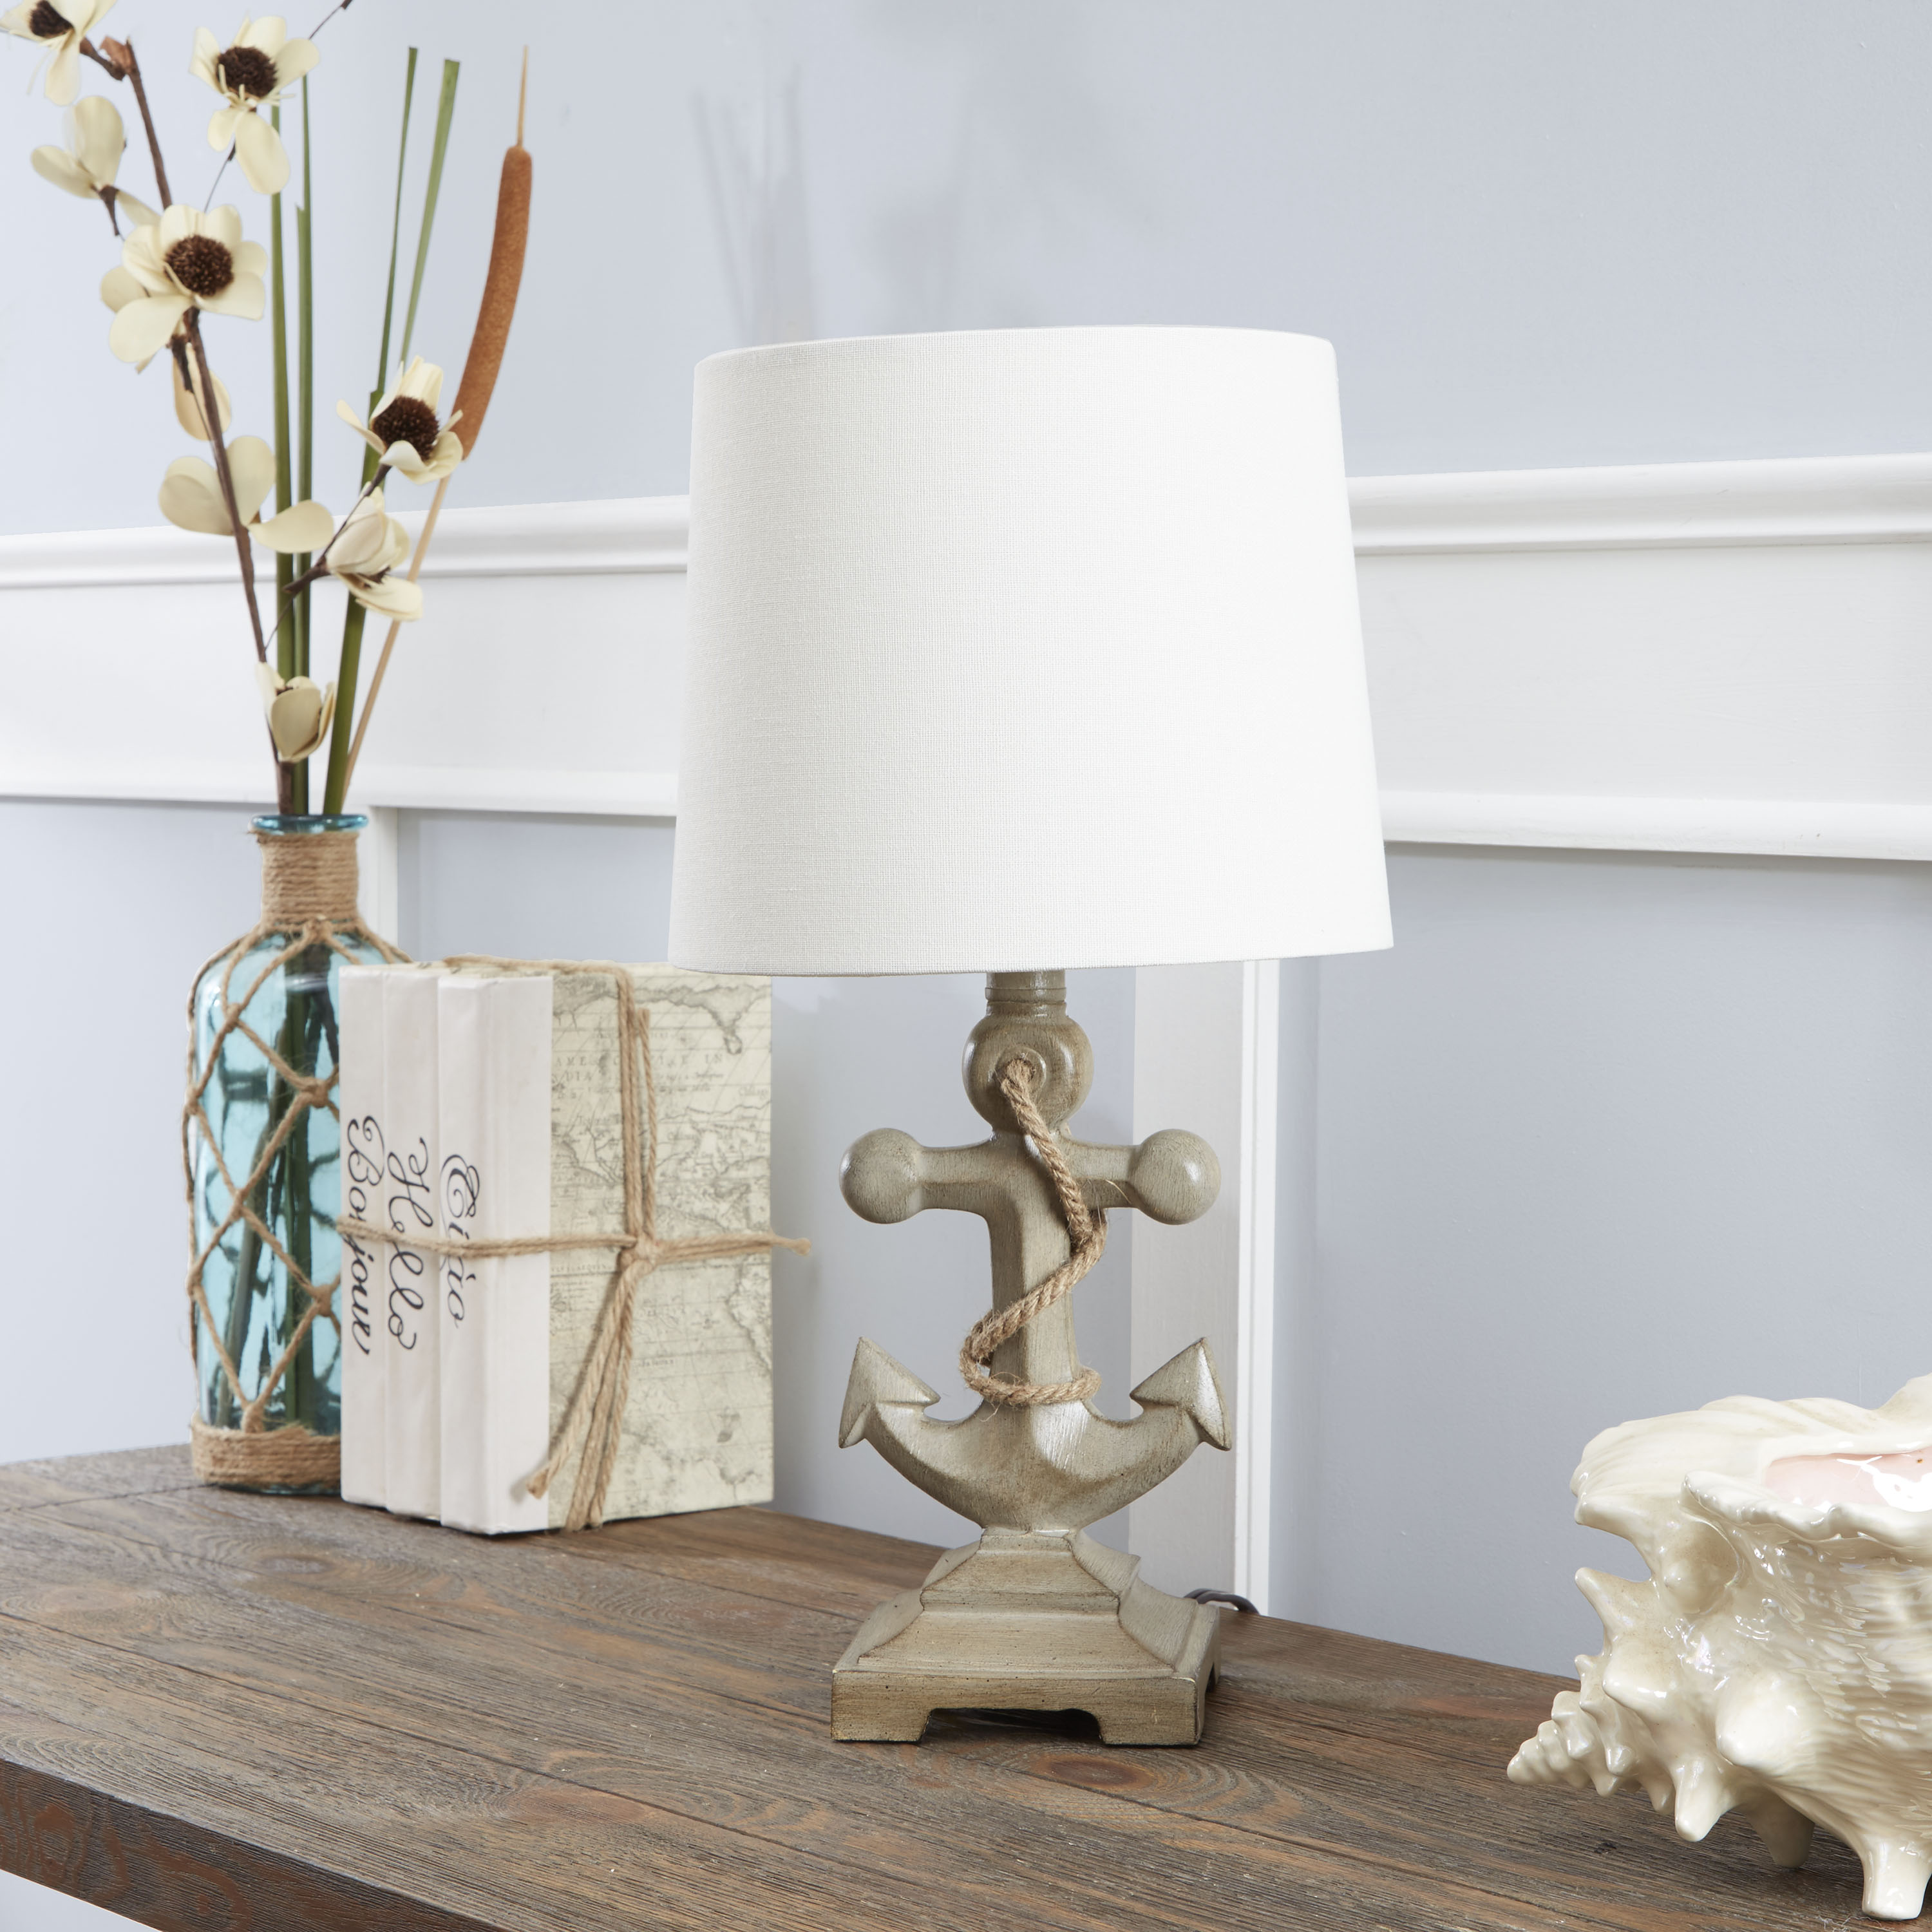 better homes and gardens anchor driftwood accent table lamp nautical lamps vintage retro dining chairs ikea console crate barrel marilyn popular monarch hall inch white hallway